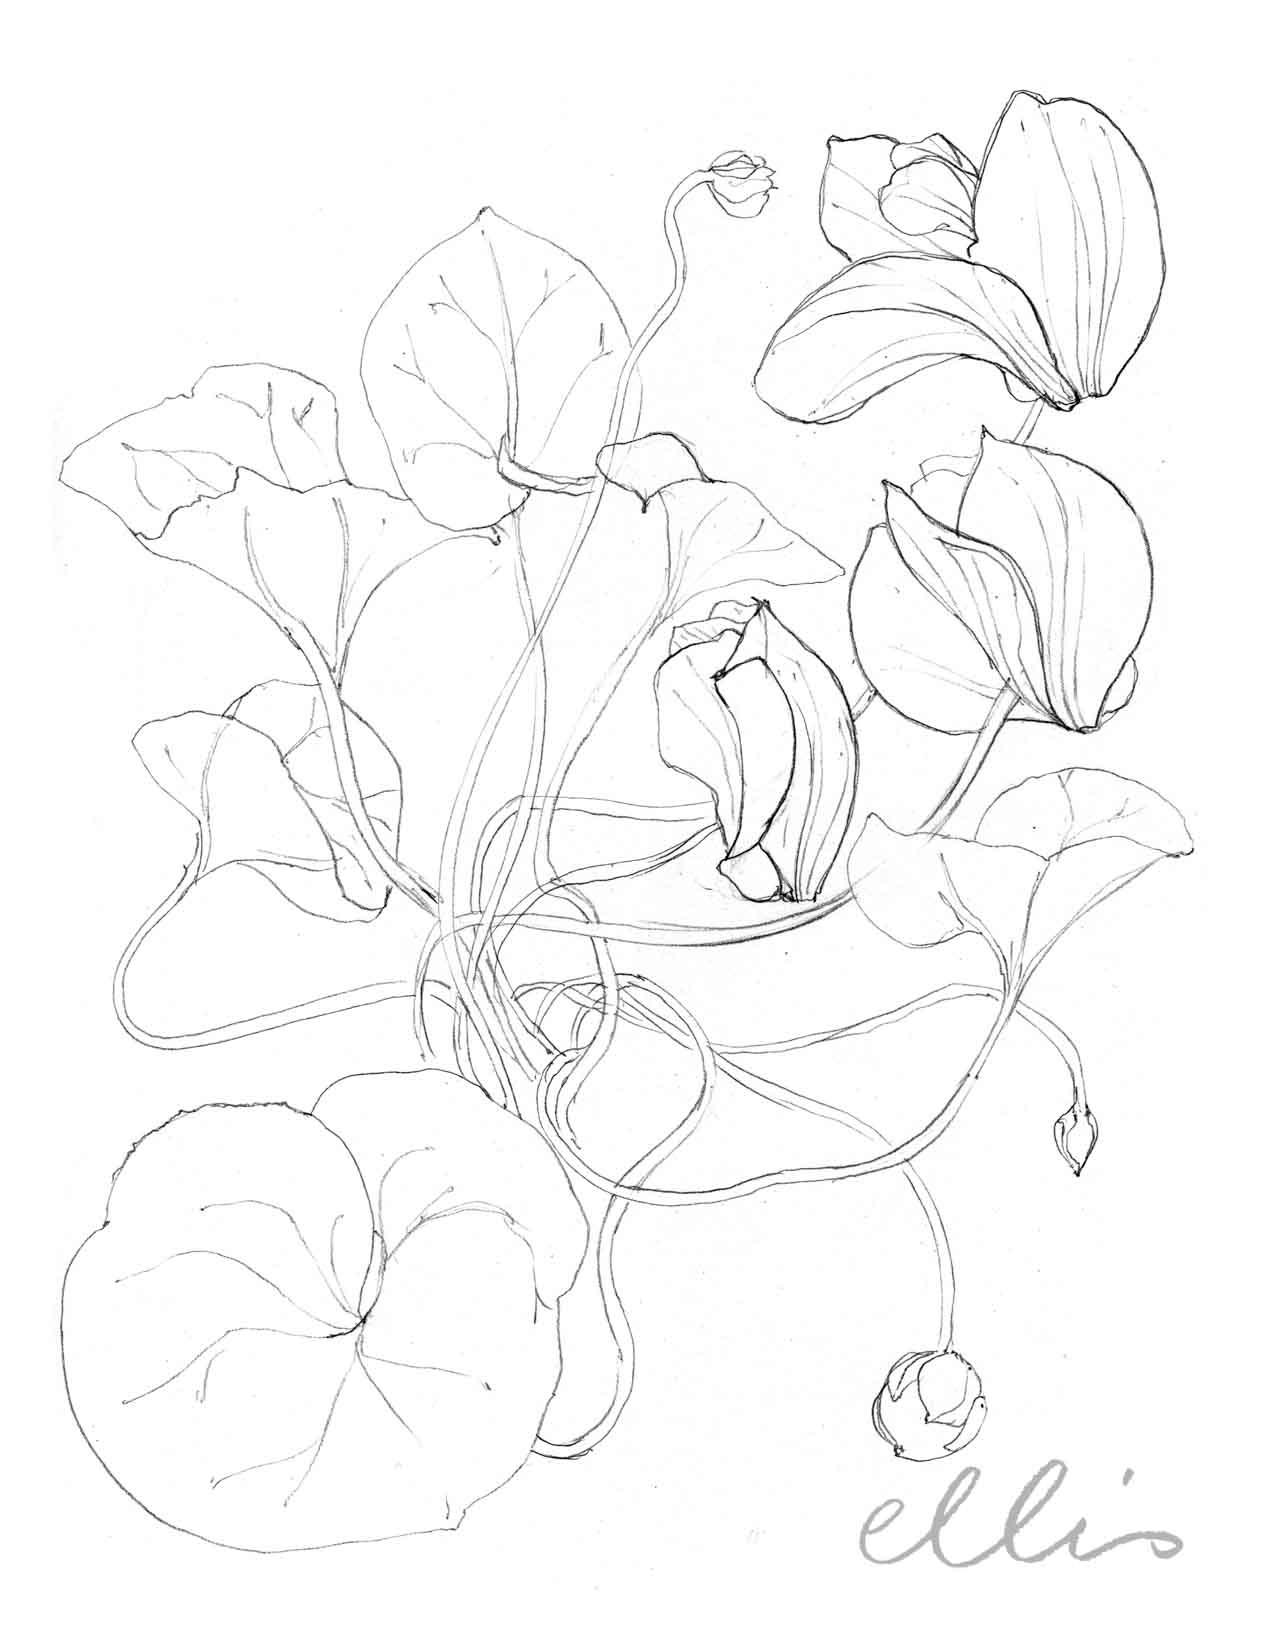 Erin Ellis_100 days project botanical drawings_2013-83.jpg